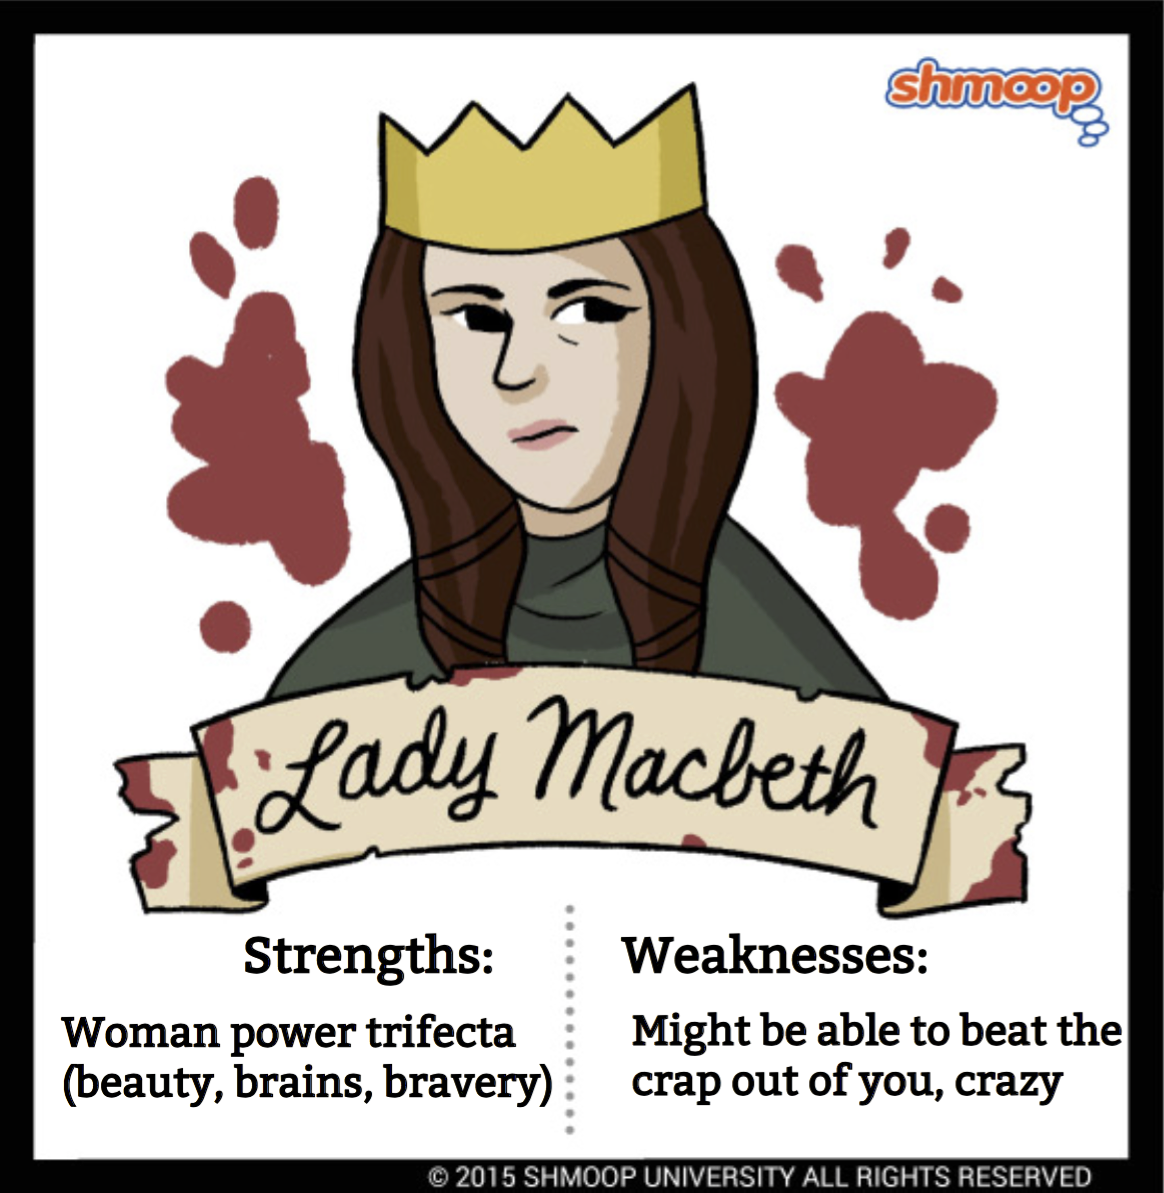 Words to describe lady macbeth